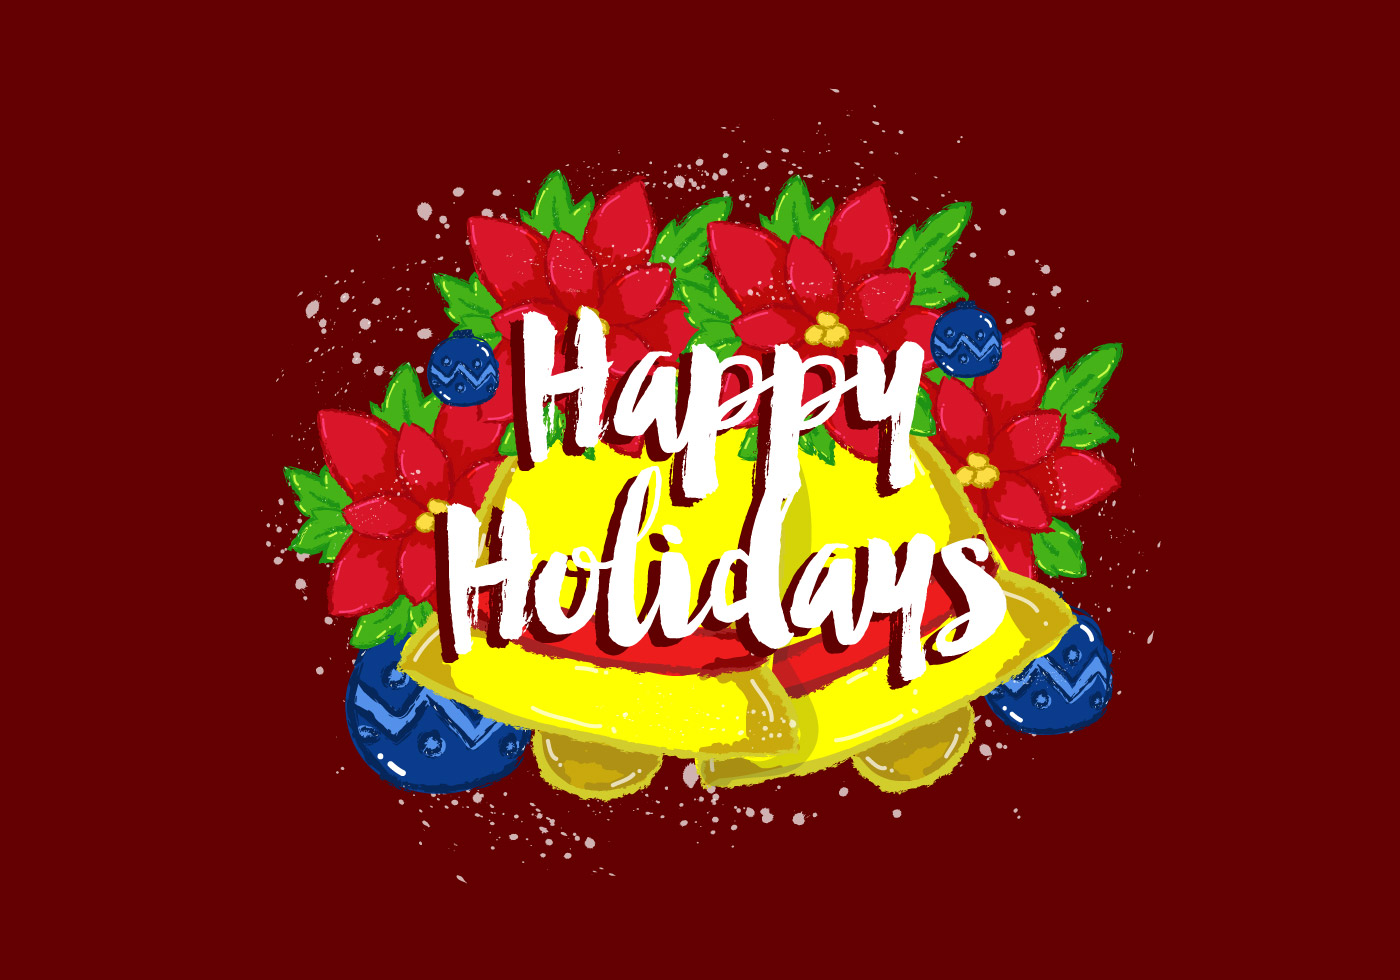 free vector happy holidays wallpaper download free